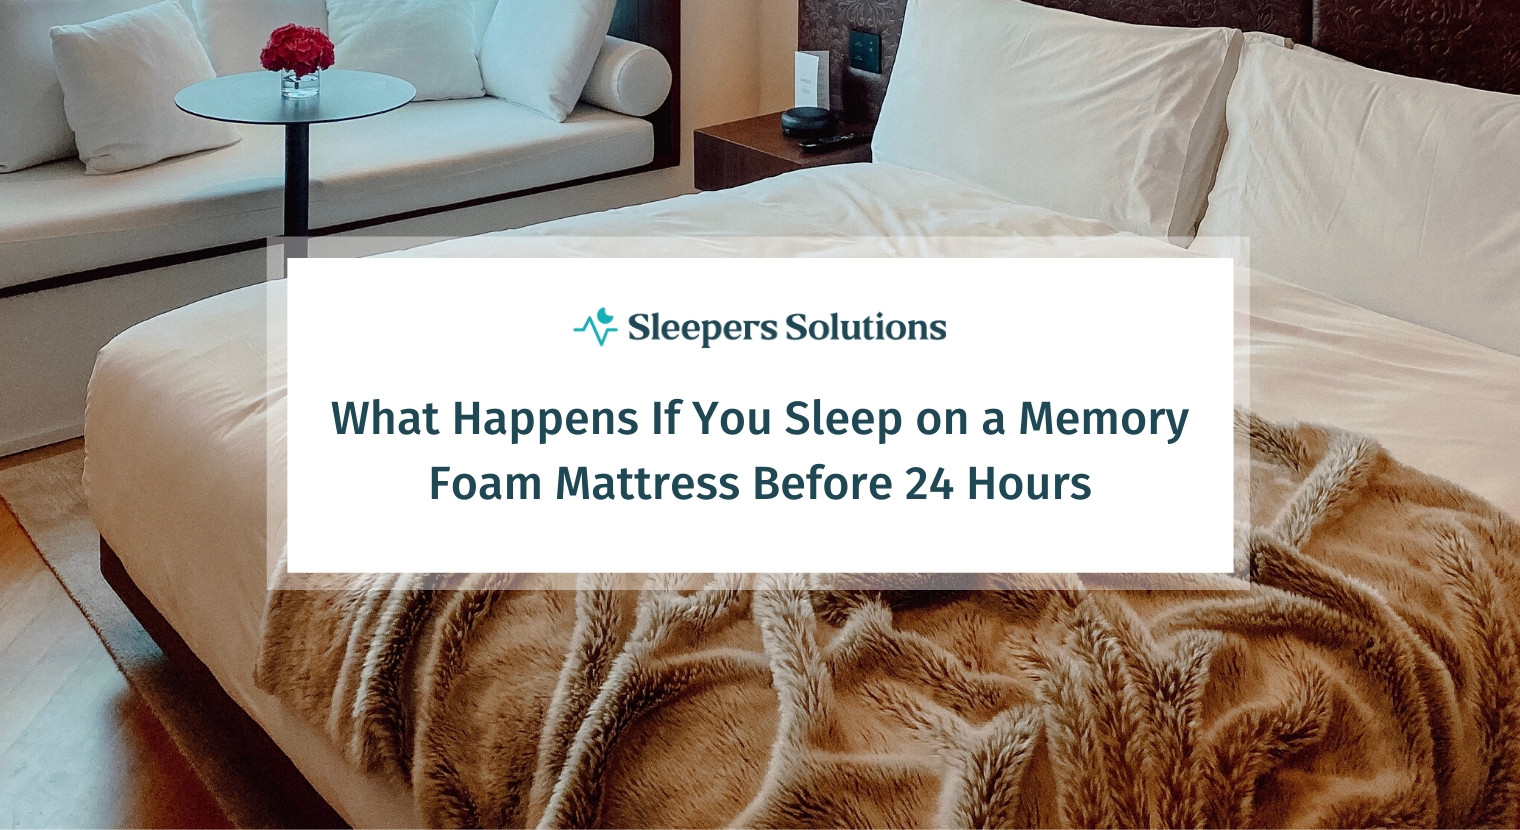 What Happens If You Sleep on a Memory Foam Mattress Before 24 Hours